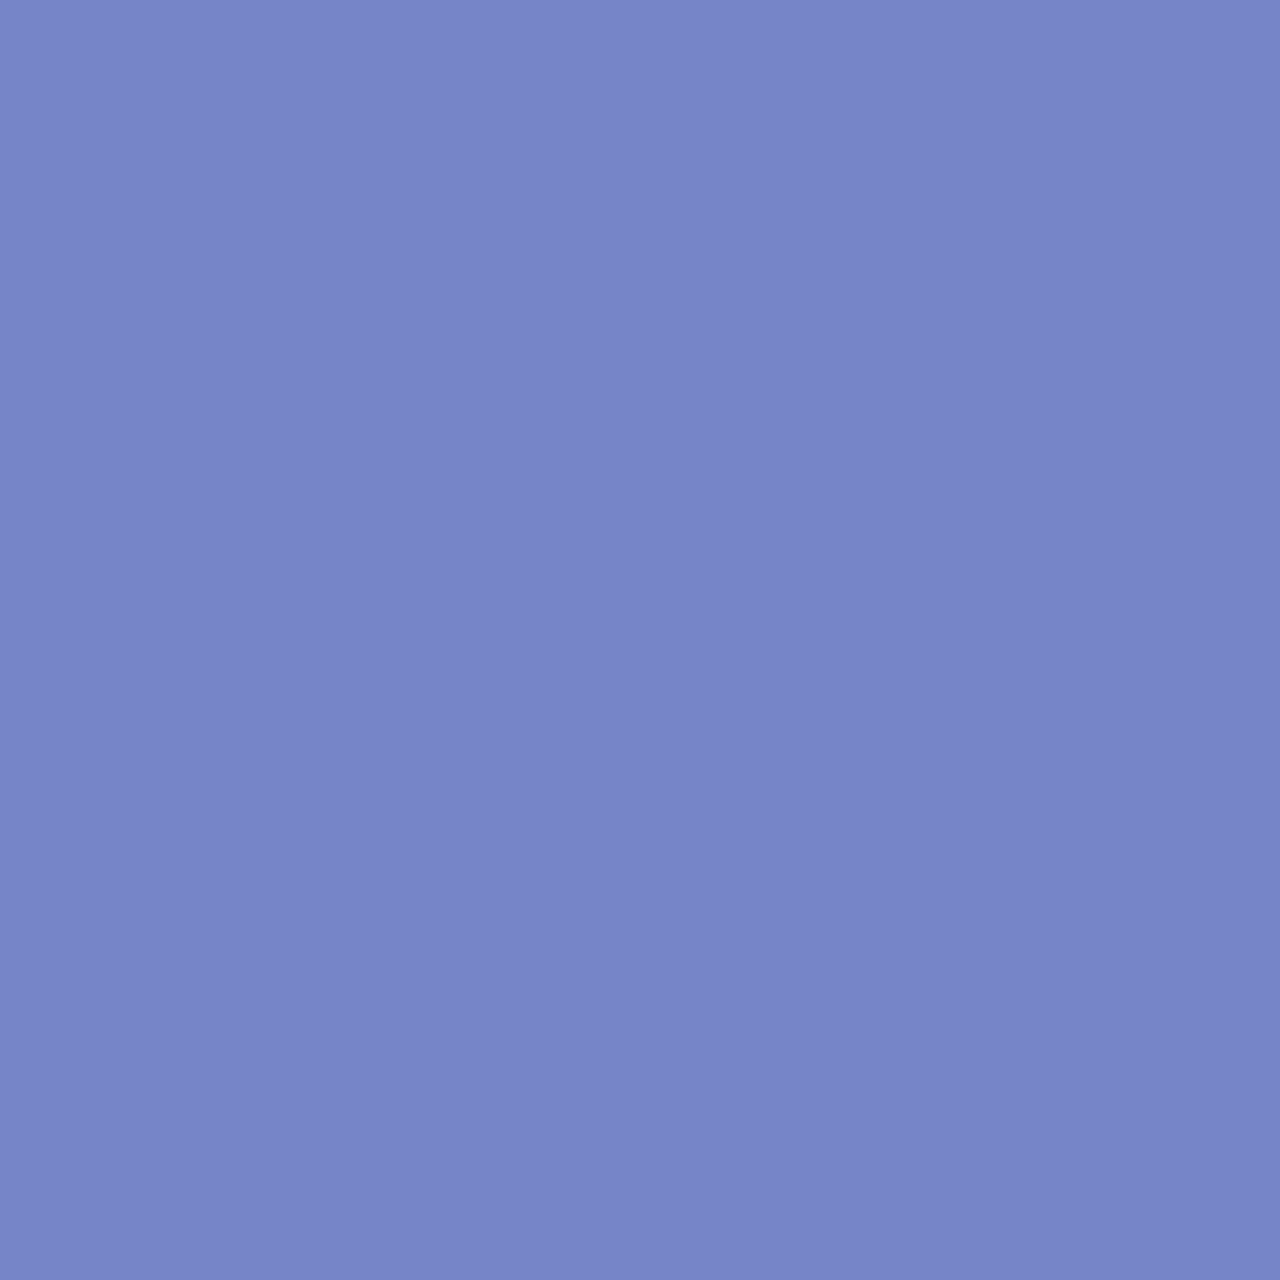 #0052 Rosco Gels Roscolux Light Lavender, 20x24""